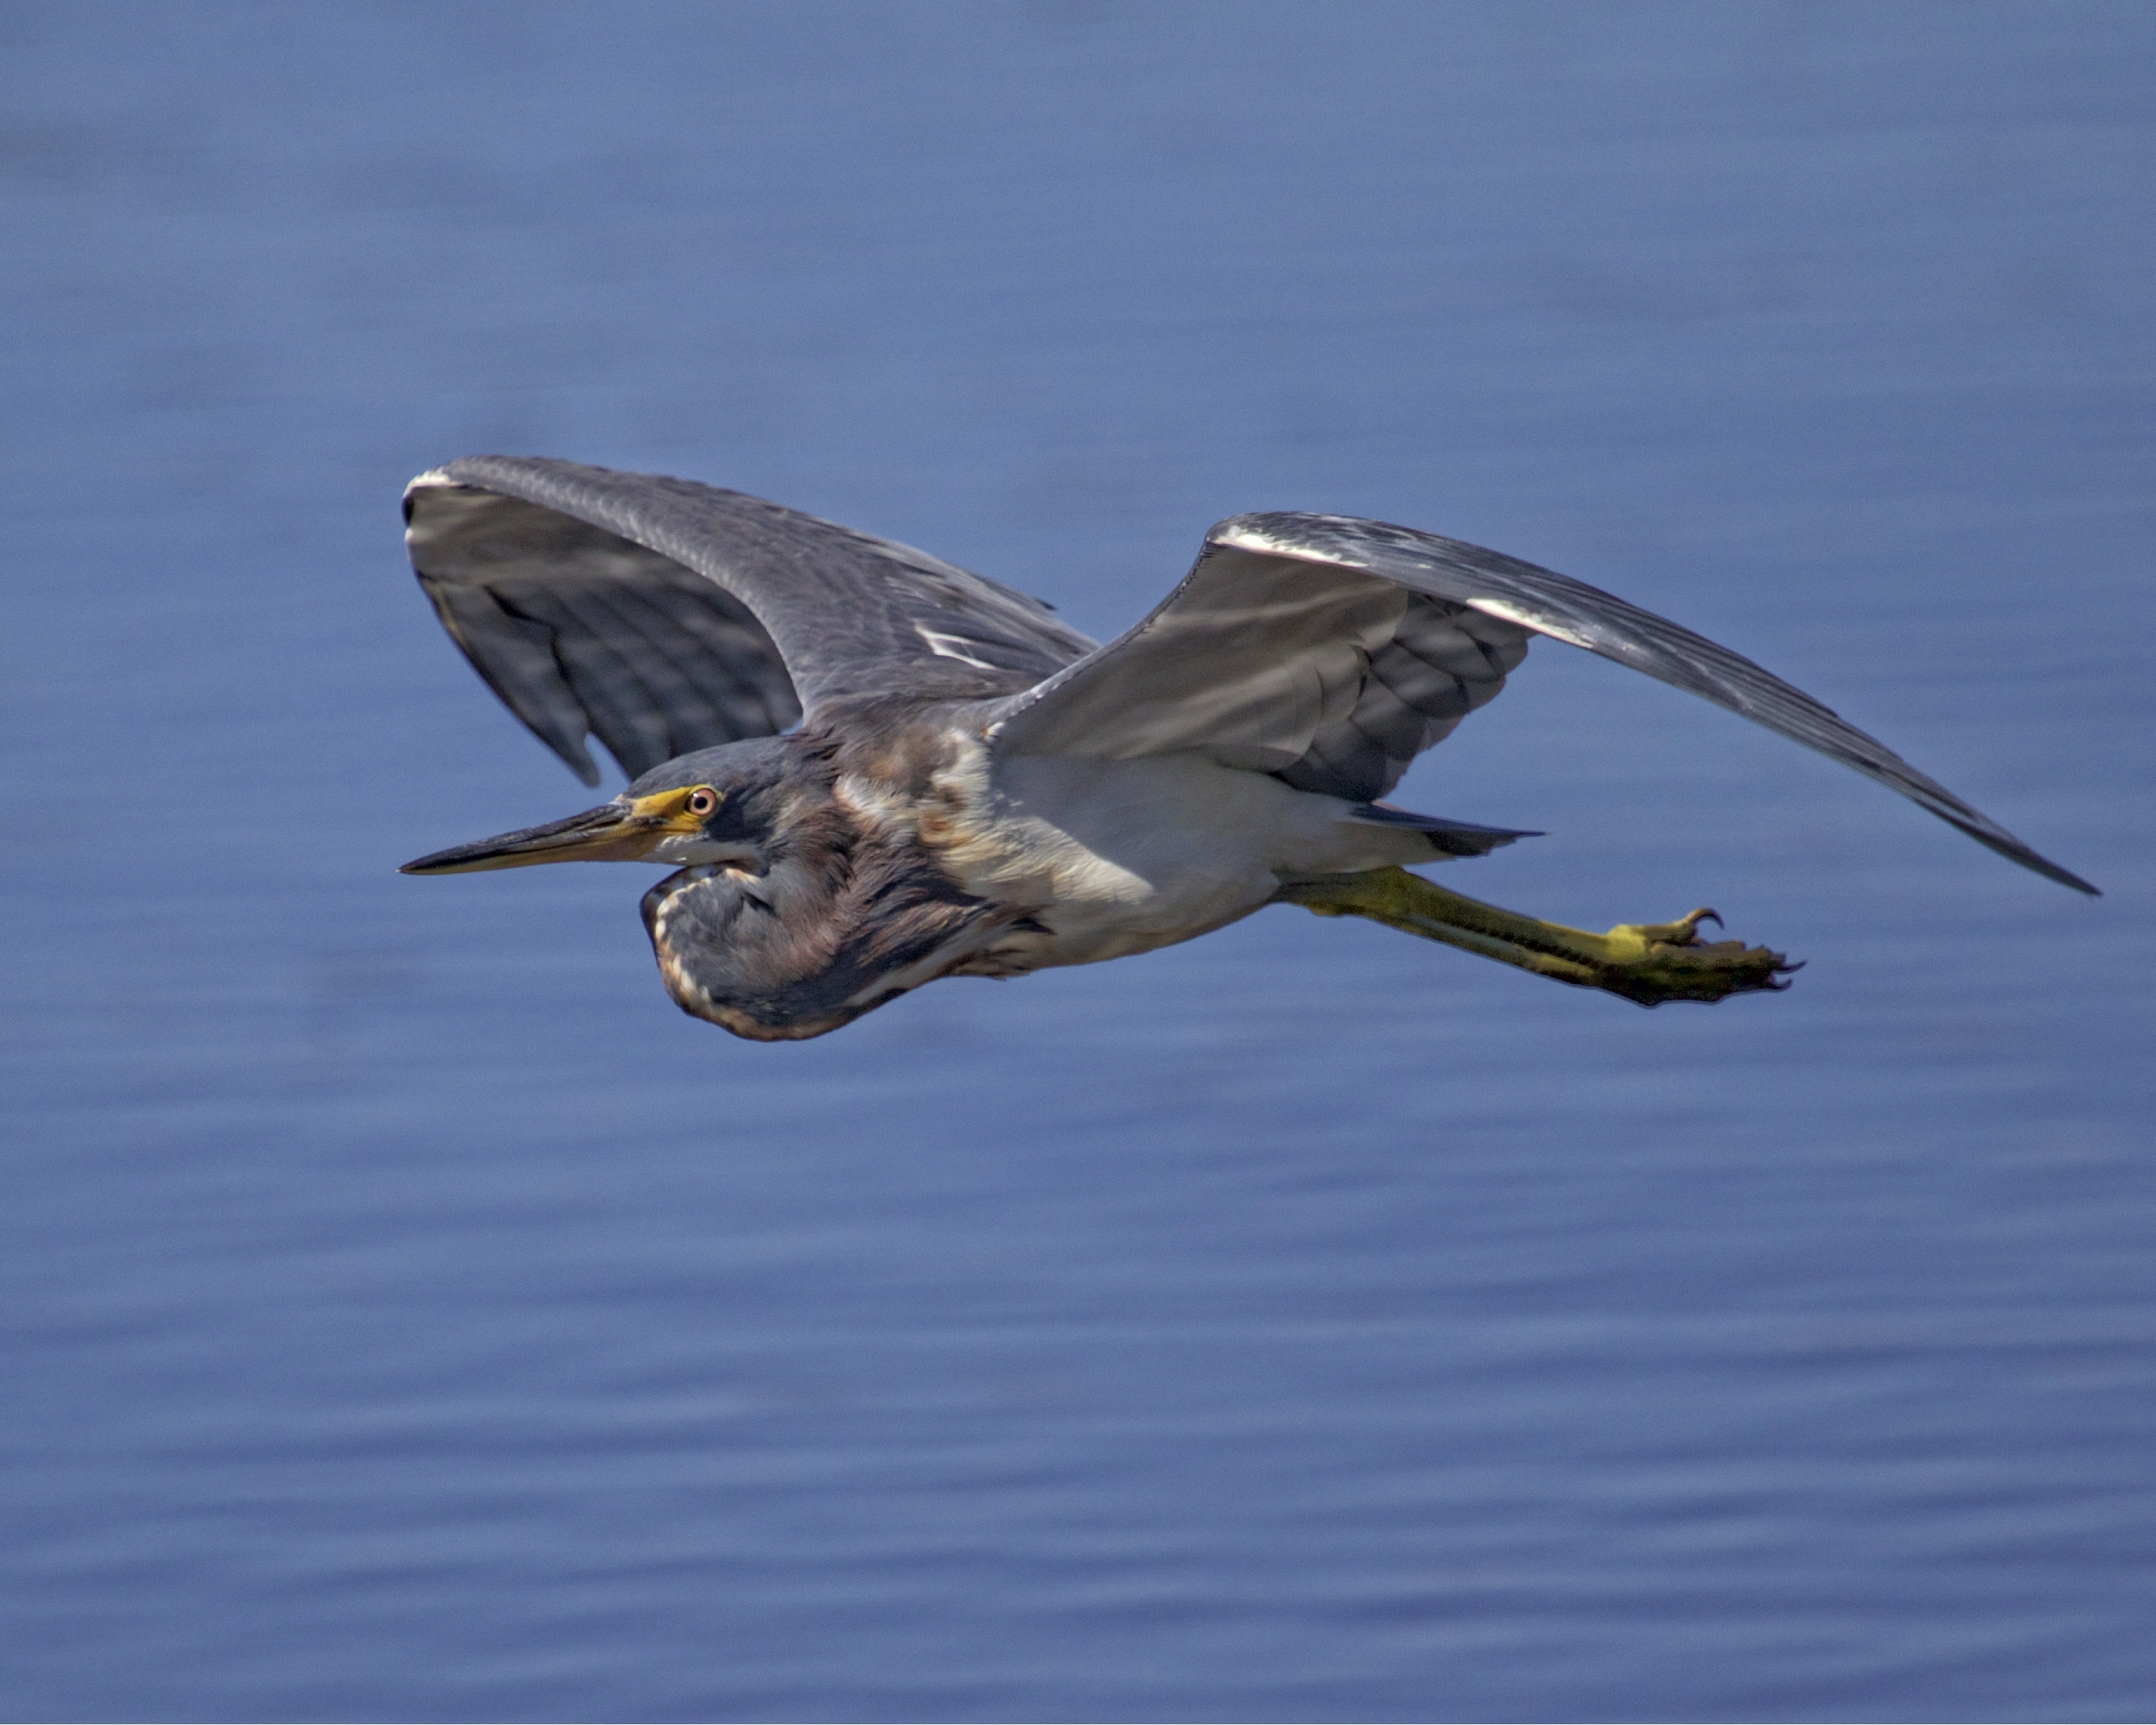 A juvenile Tricolored Heron flys up towards me and lands near my chair.